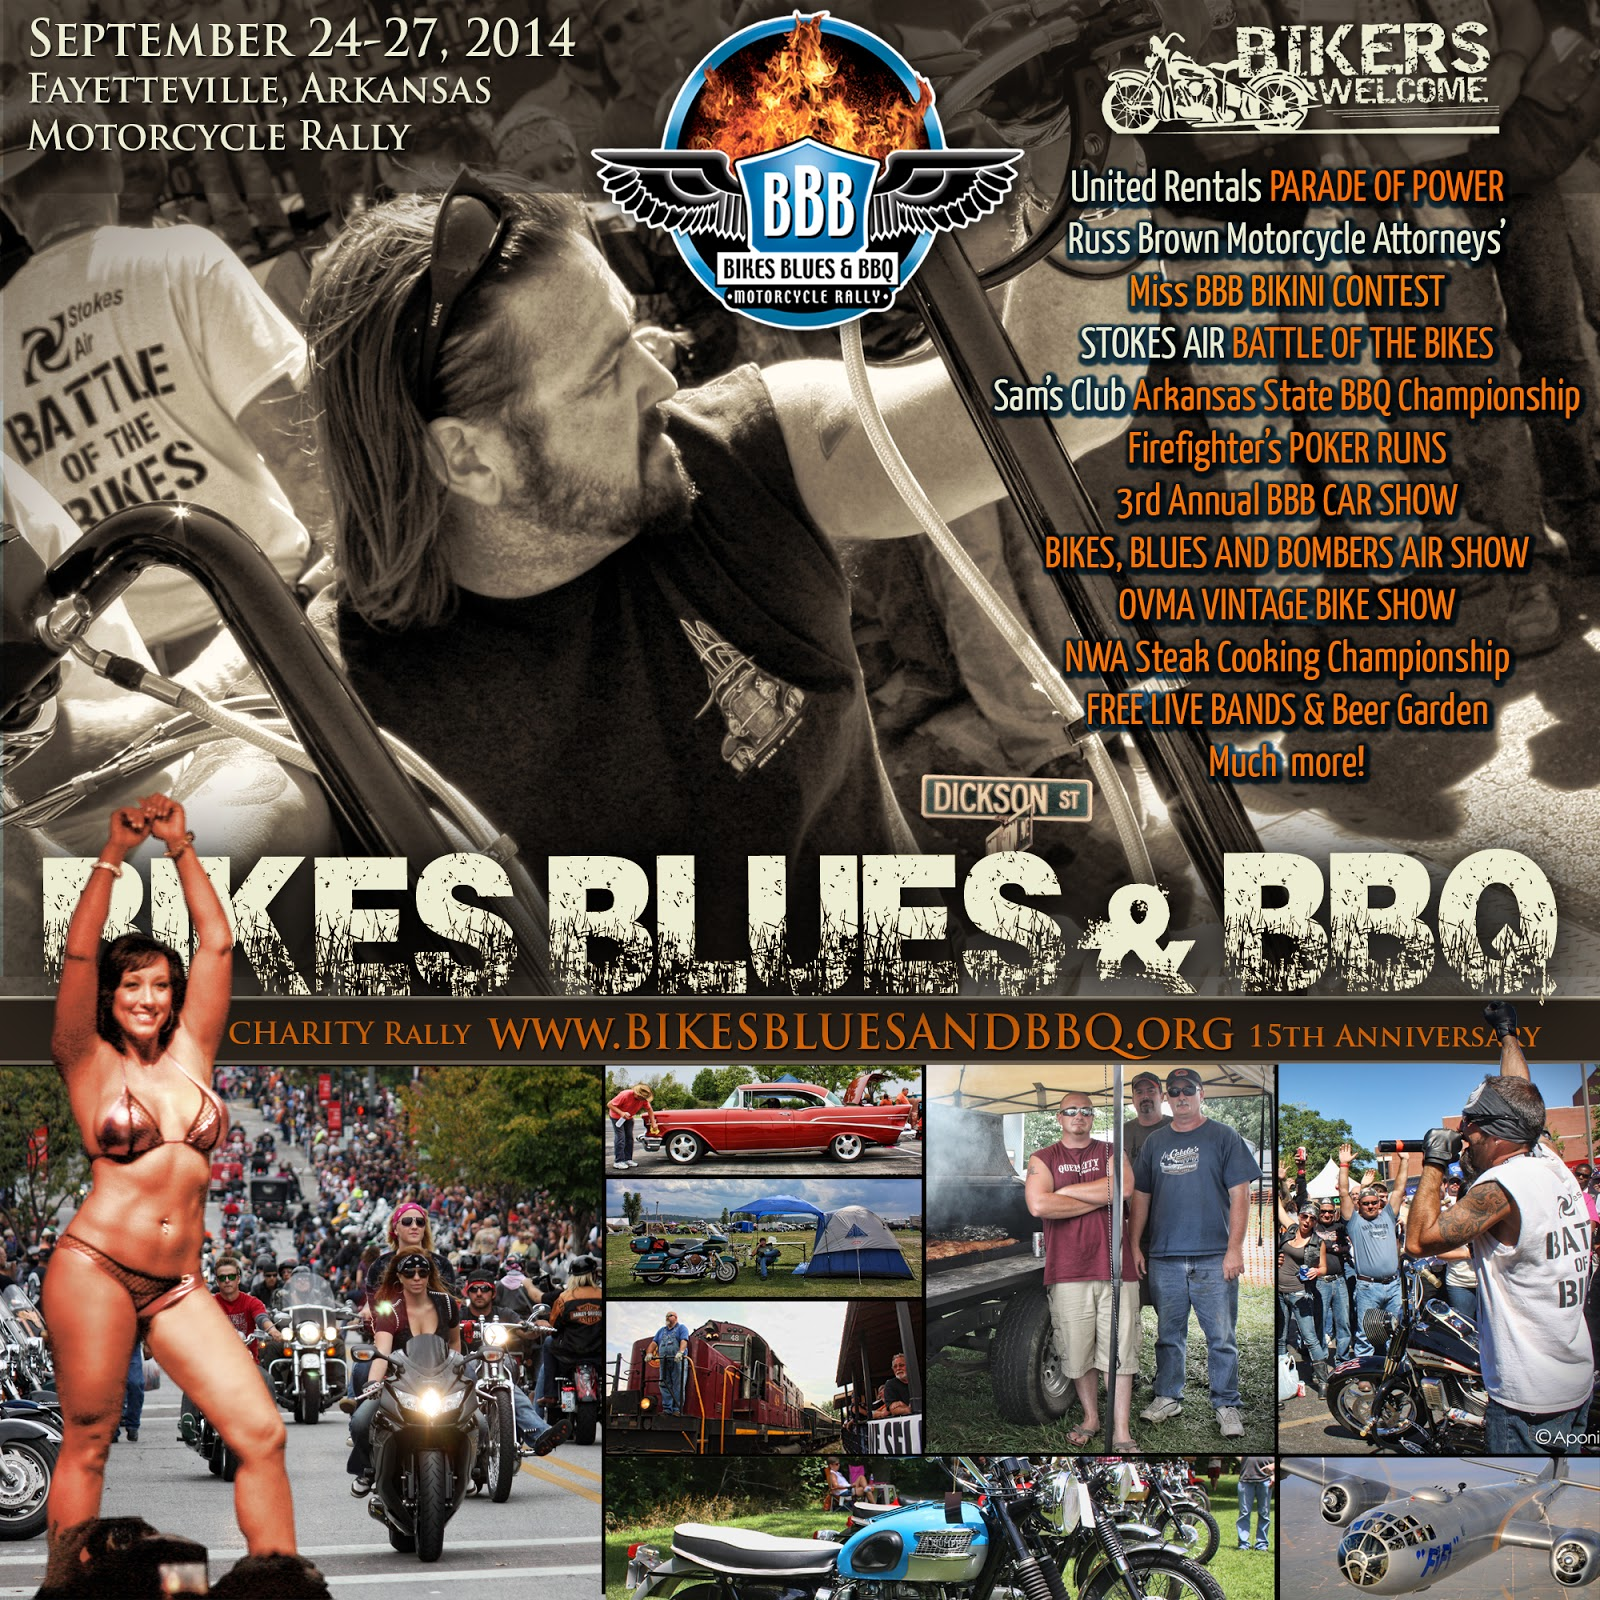 Bikes Blues And Bbq Schedule 2014 Bikes Blues and BBQ Events